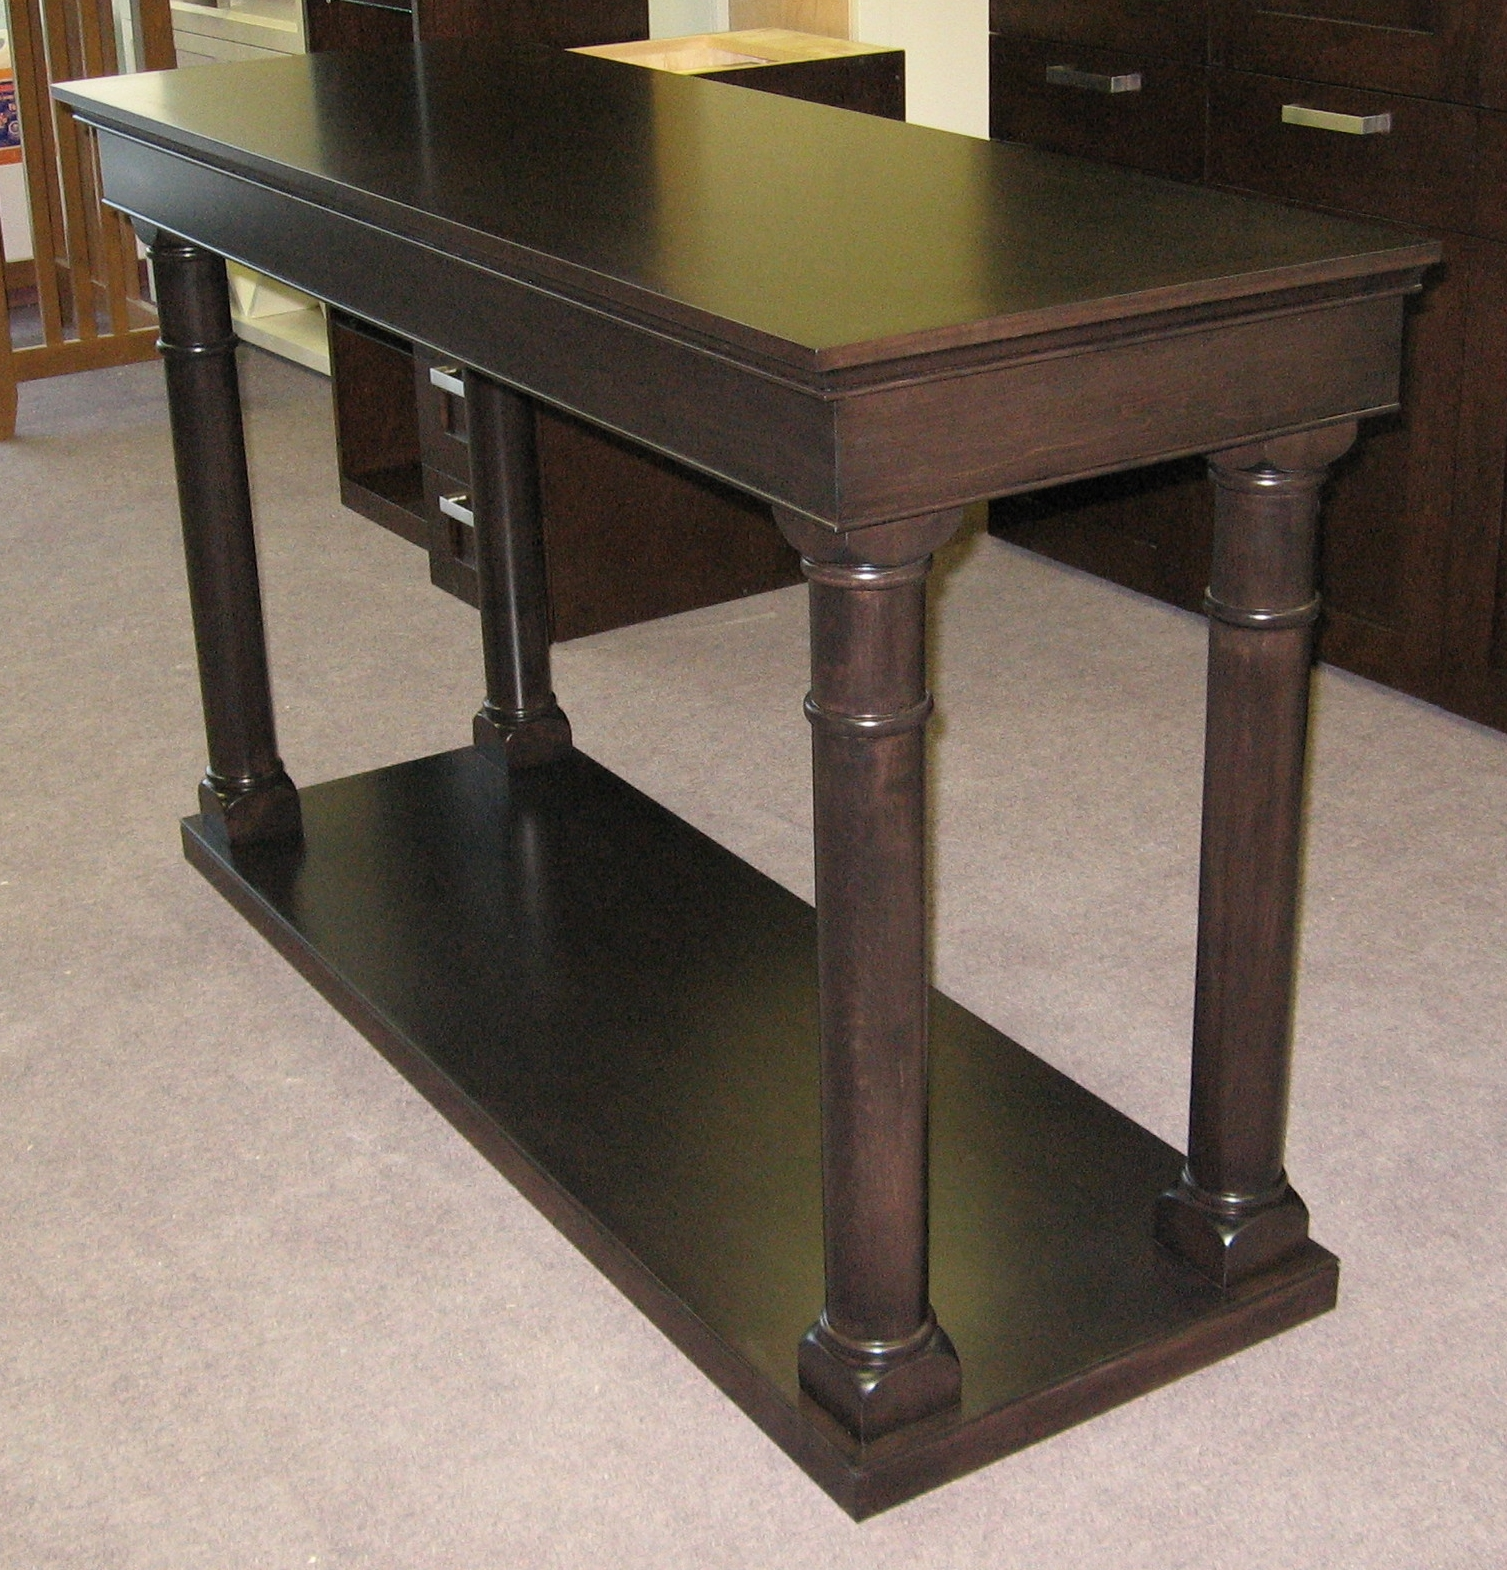 empire-style-traditional-sofa-console-table.JPG